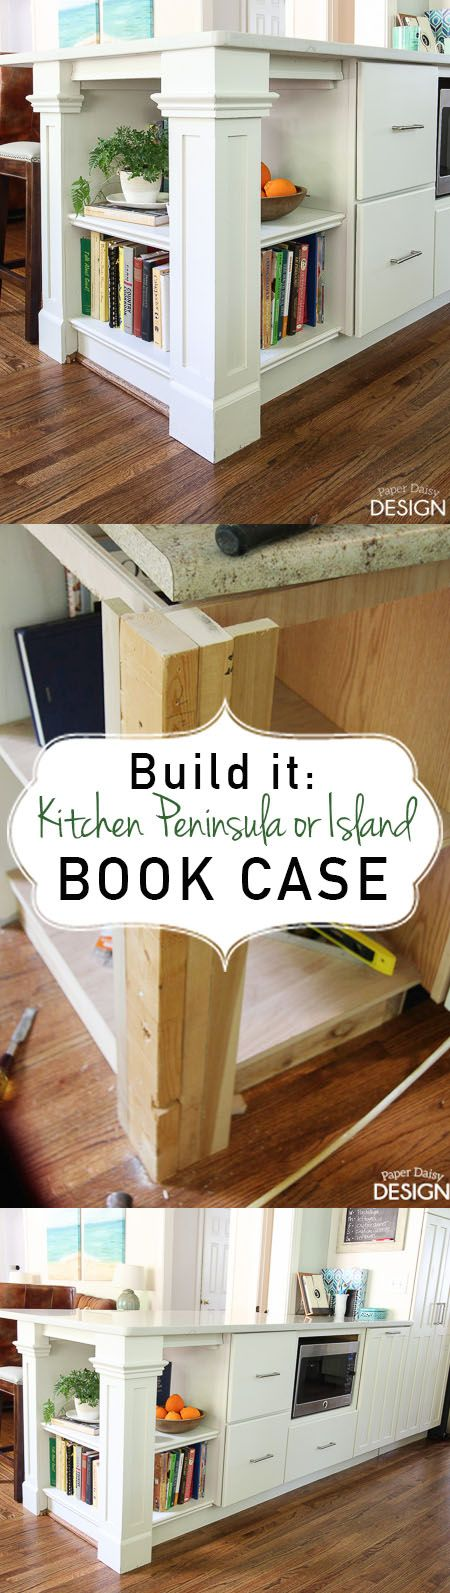 Build it custom kitchen bookcase kitchen peninsula dishes and how to build a kitchen peninsula or island book case or bookshelves create architectural interest and storage in your kitchen solutioingenieria